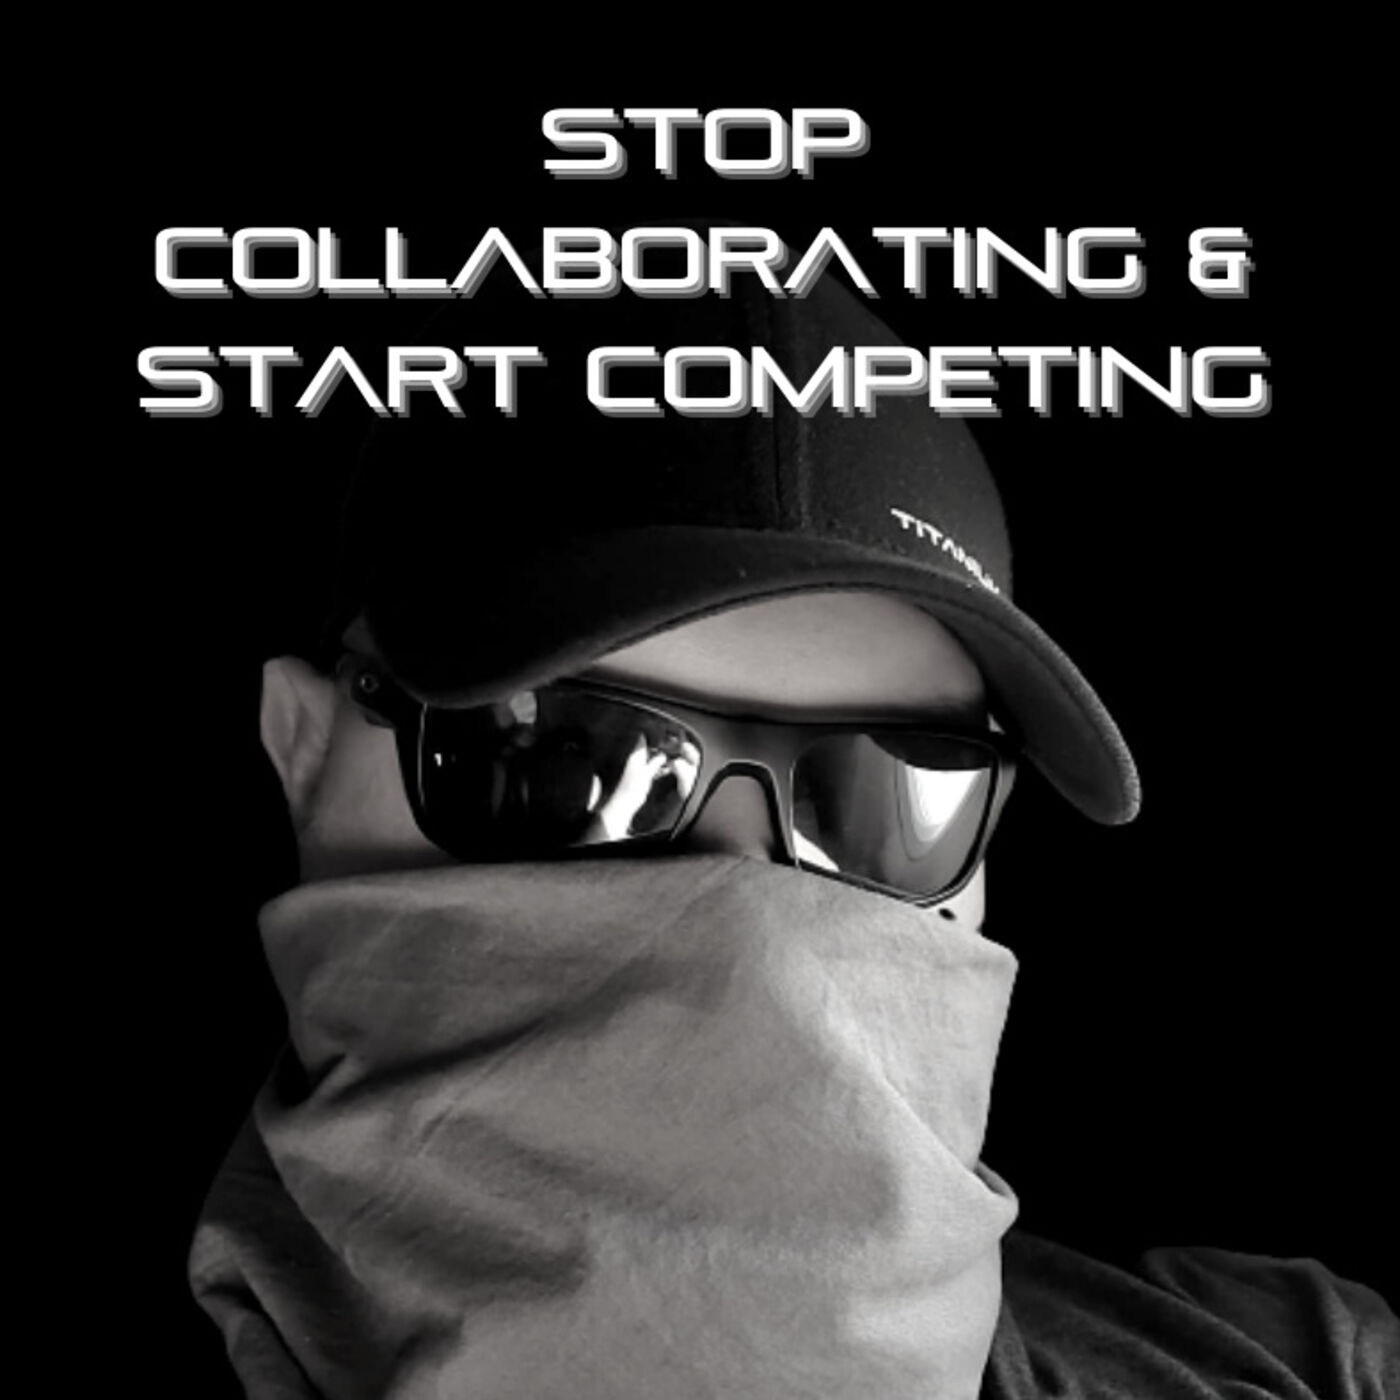 Stop Collaborating & Start Competing